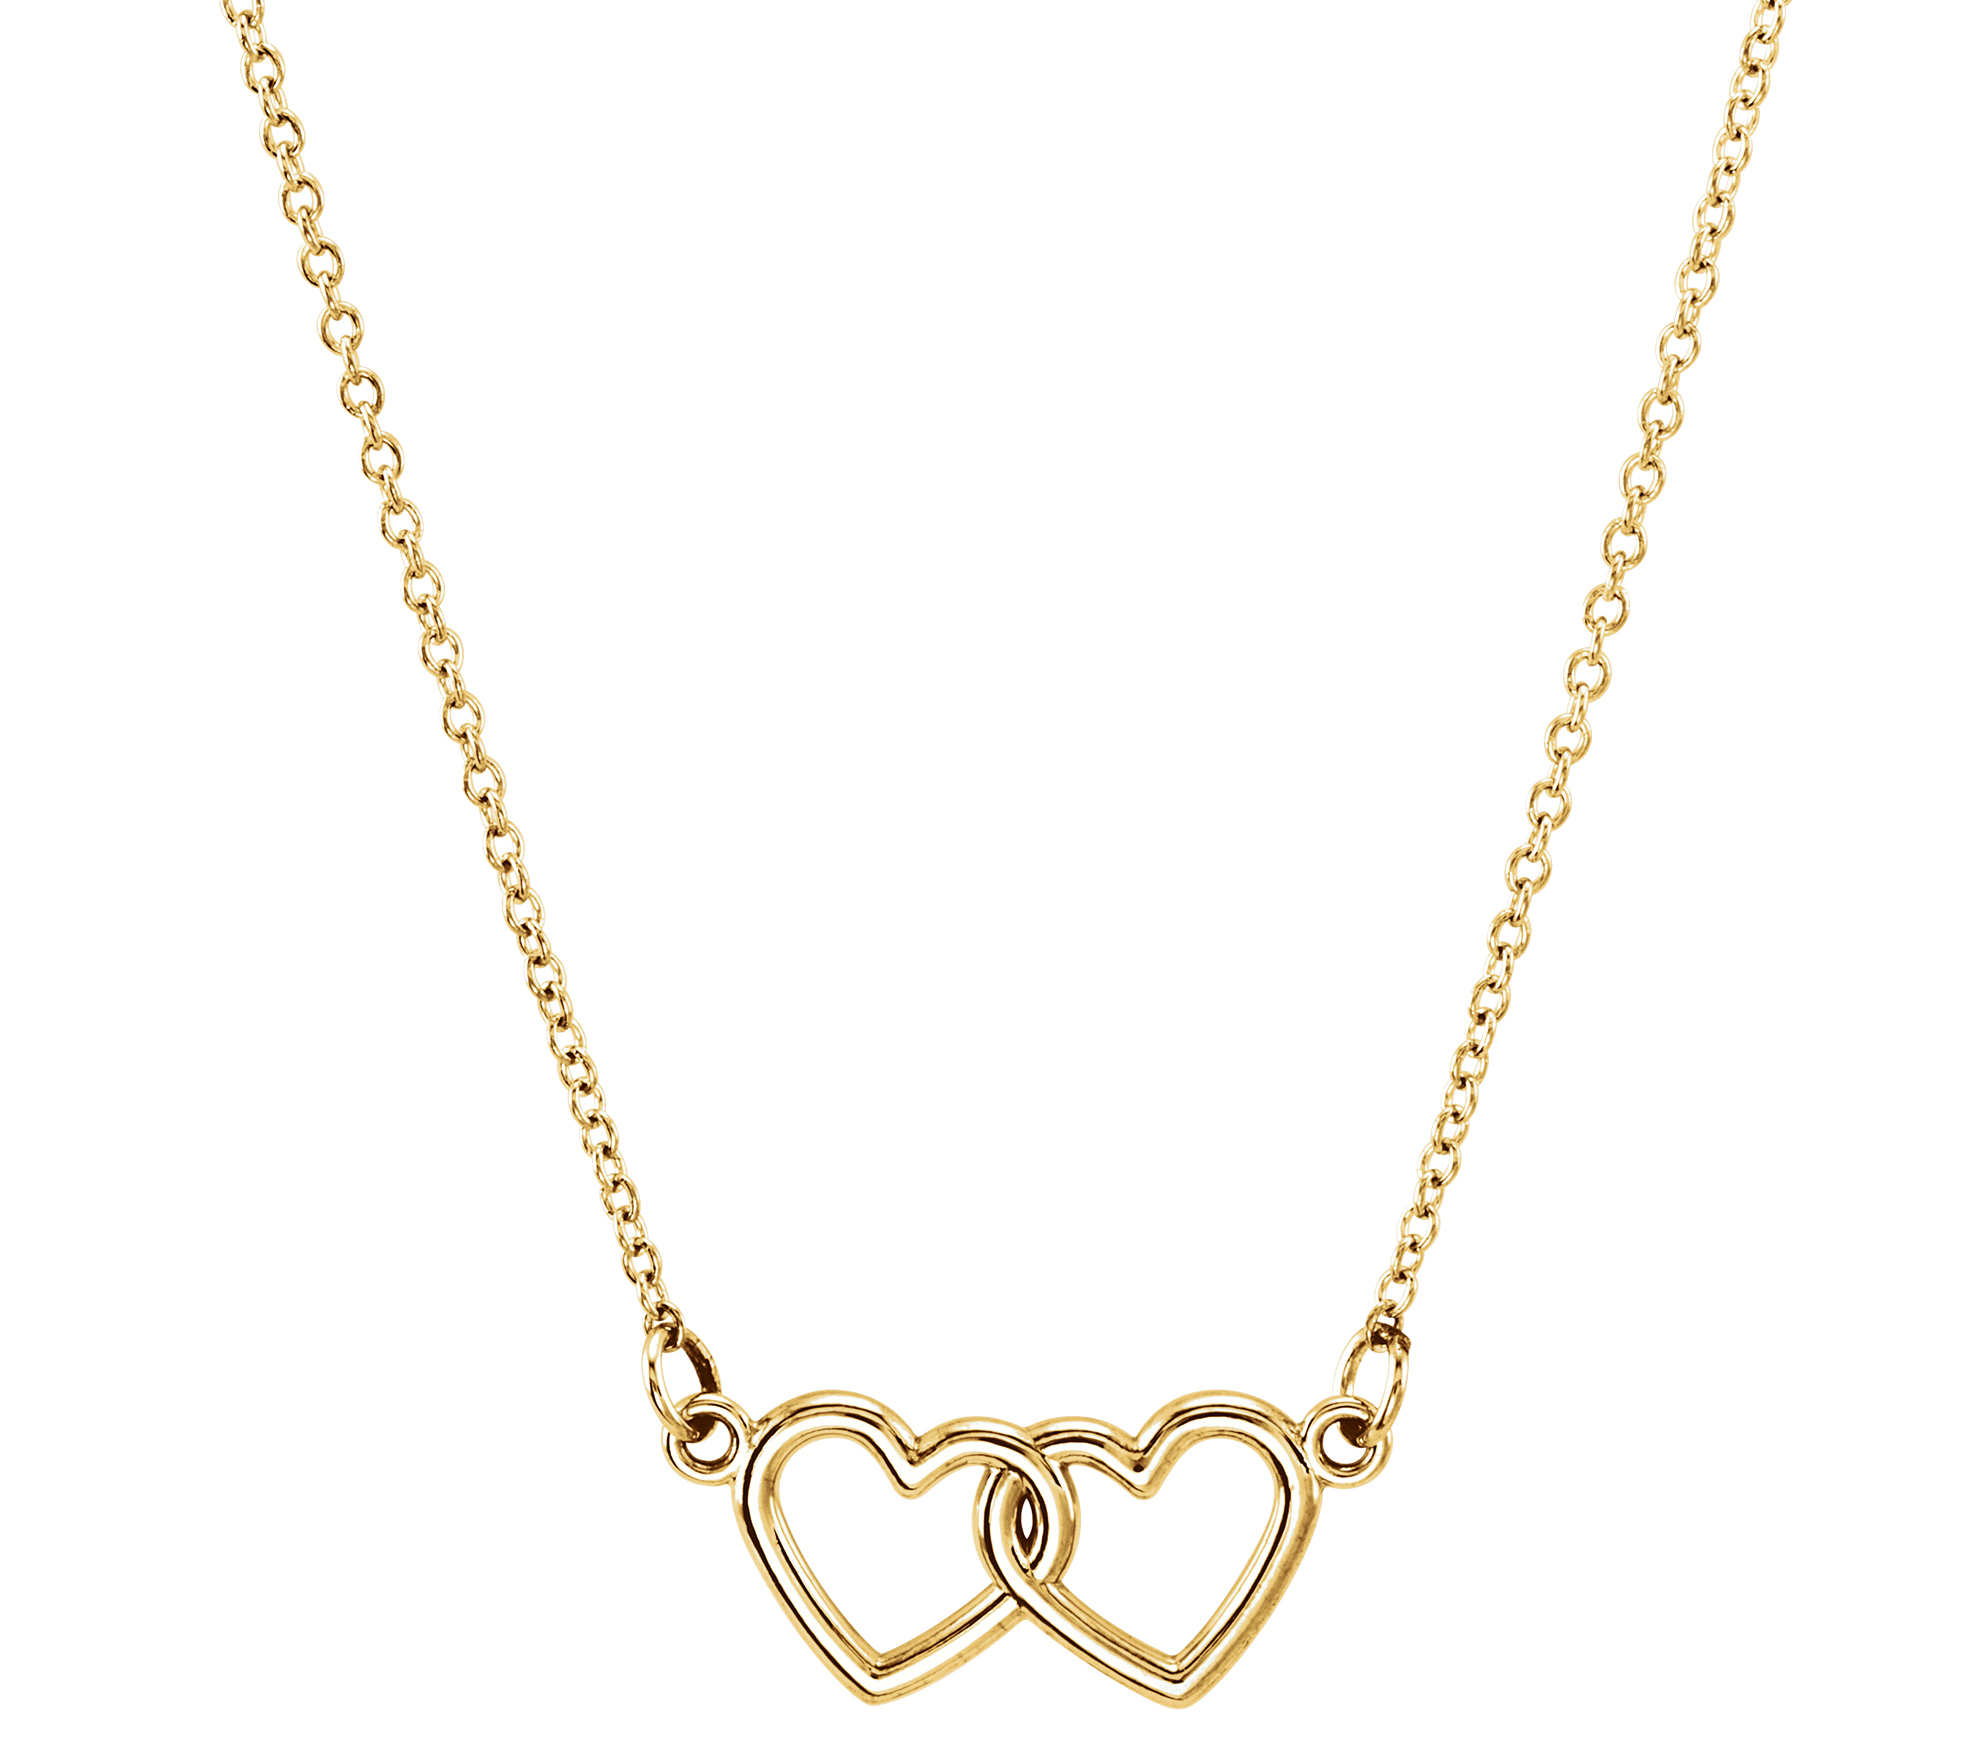 Stuller double heart necklace | JCK On Your Market